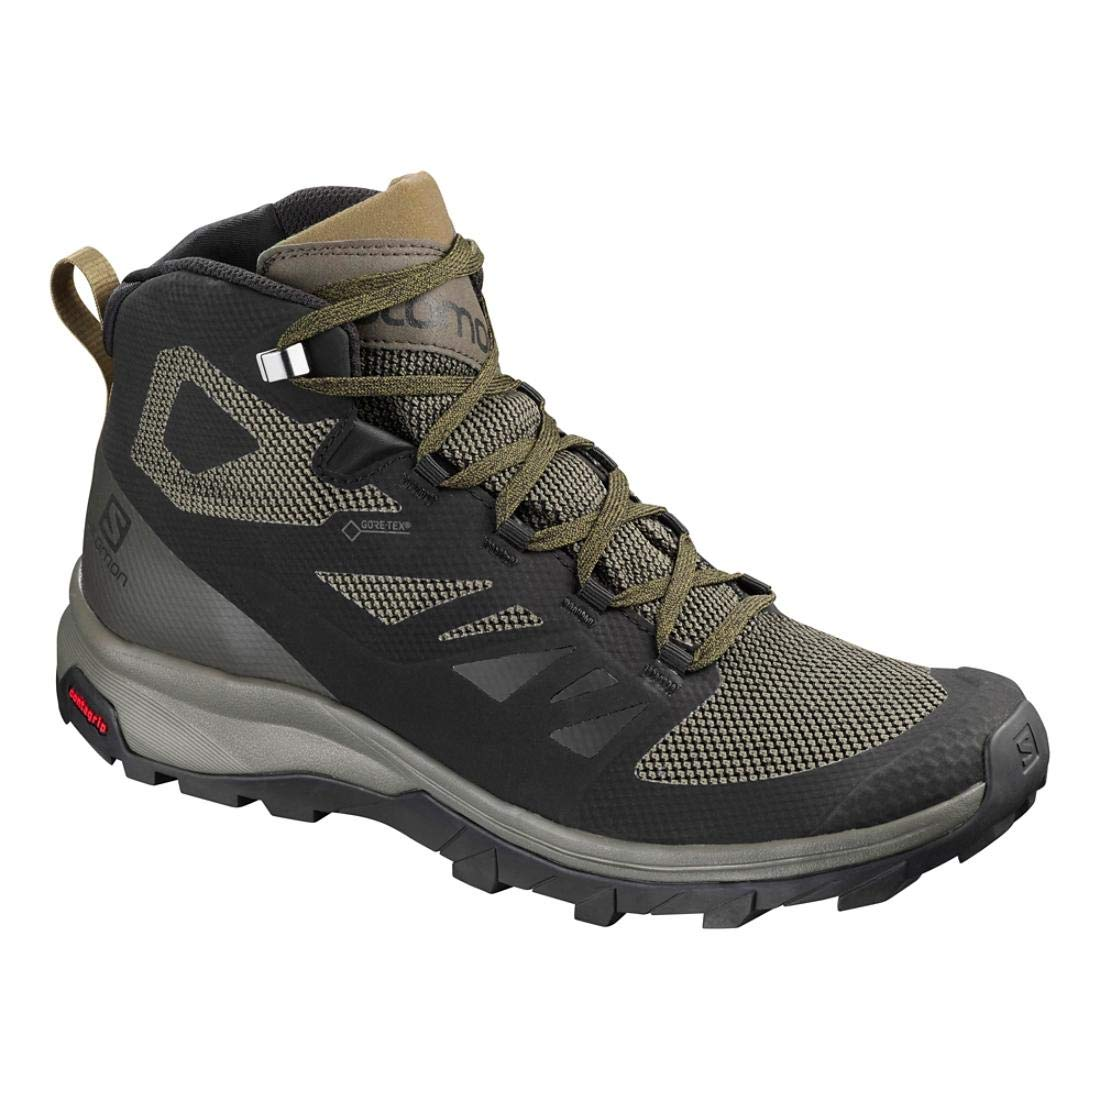 Salomon Outline Beluga Mid GTX Black Beluga Outline Capers 43 1/3 EU|Graphite-noir-gris 02d16c